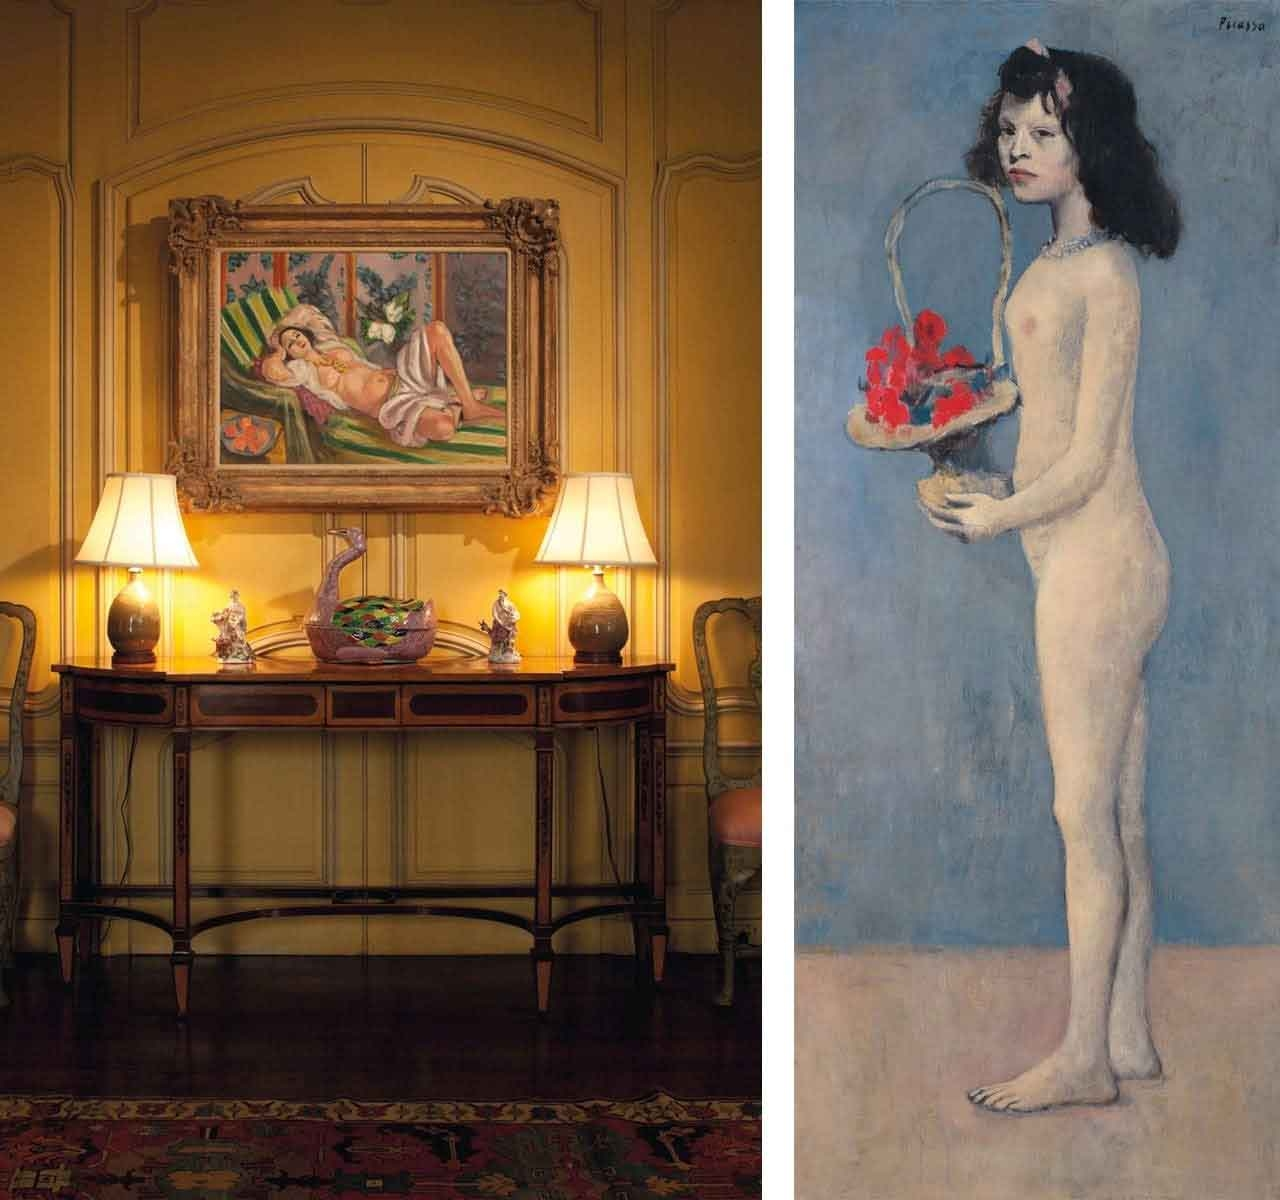 On the left Peggy and David Rockefeller's Hudson Pines Residence, hanging on the wall is Henri Matisse, Odalisque couchée aux magnolias, 1923 and on the right Pablo Picasso, Fillette à la corbeille fleurie